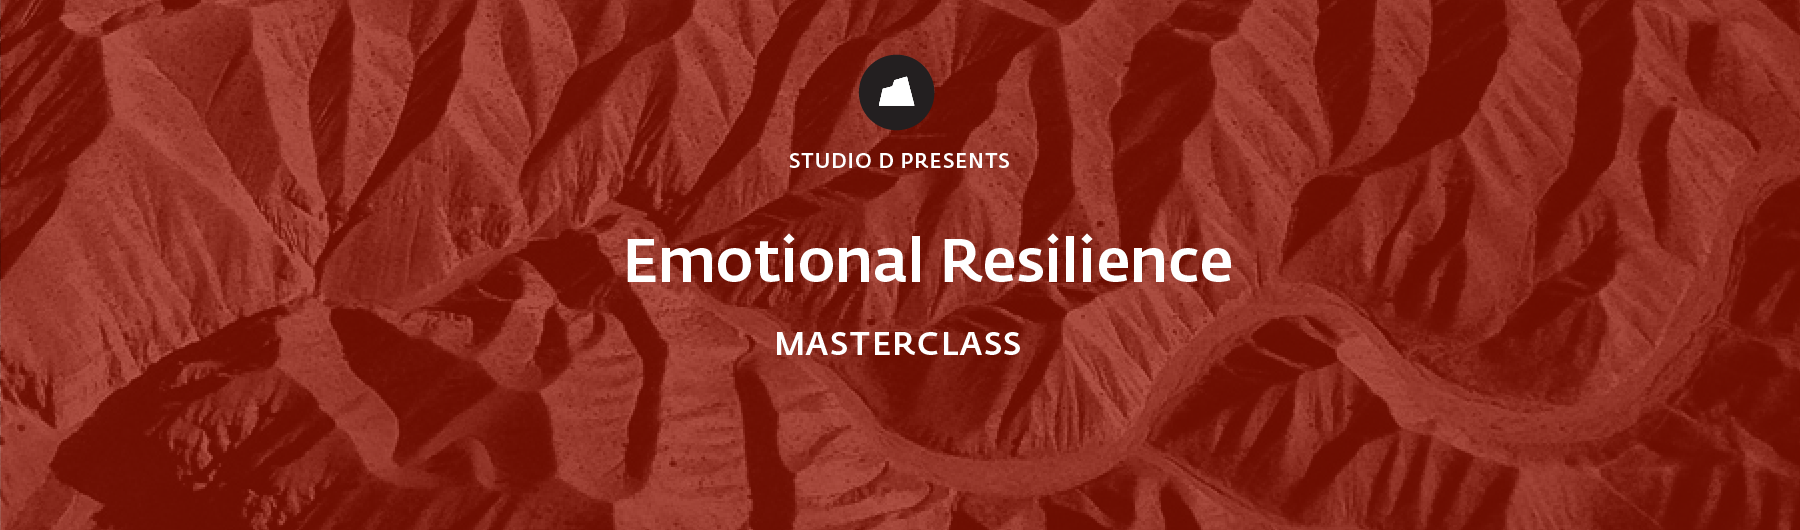 Emotional Resilience Masterclass, 26 March 2020, San Francisco